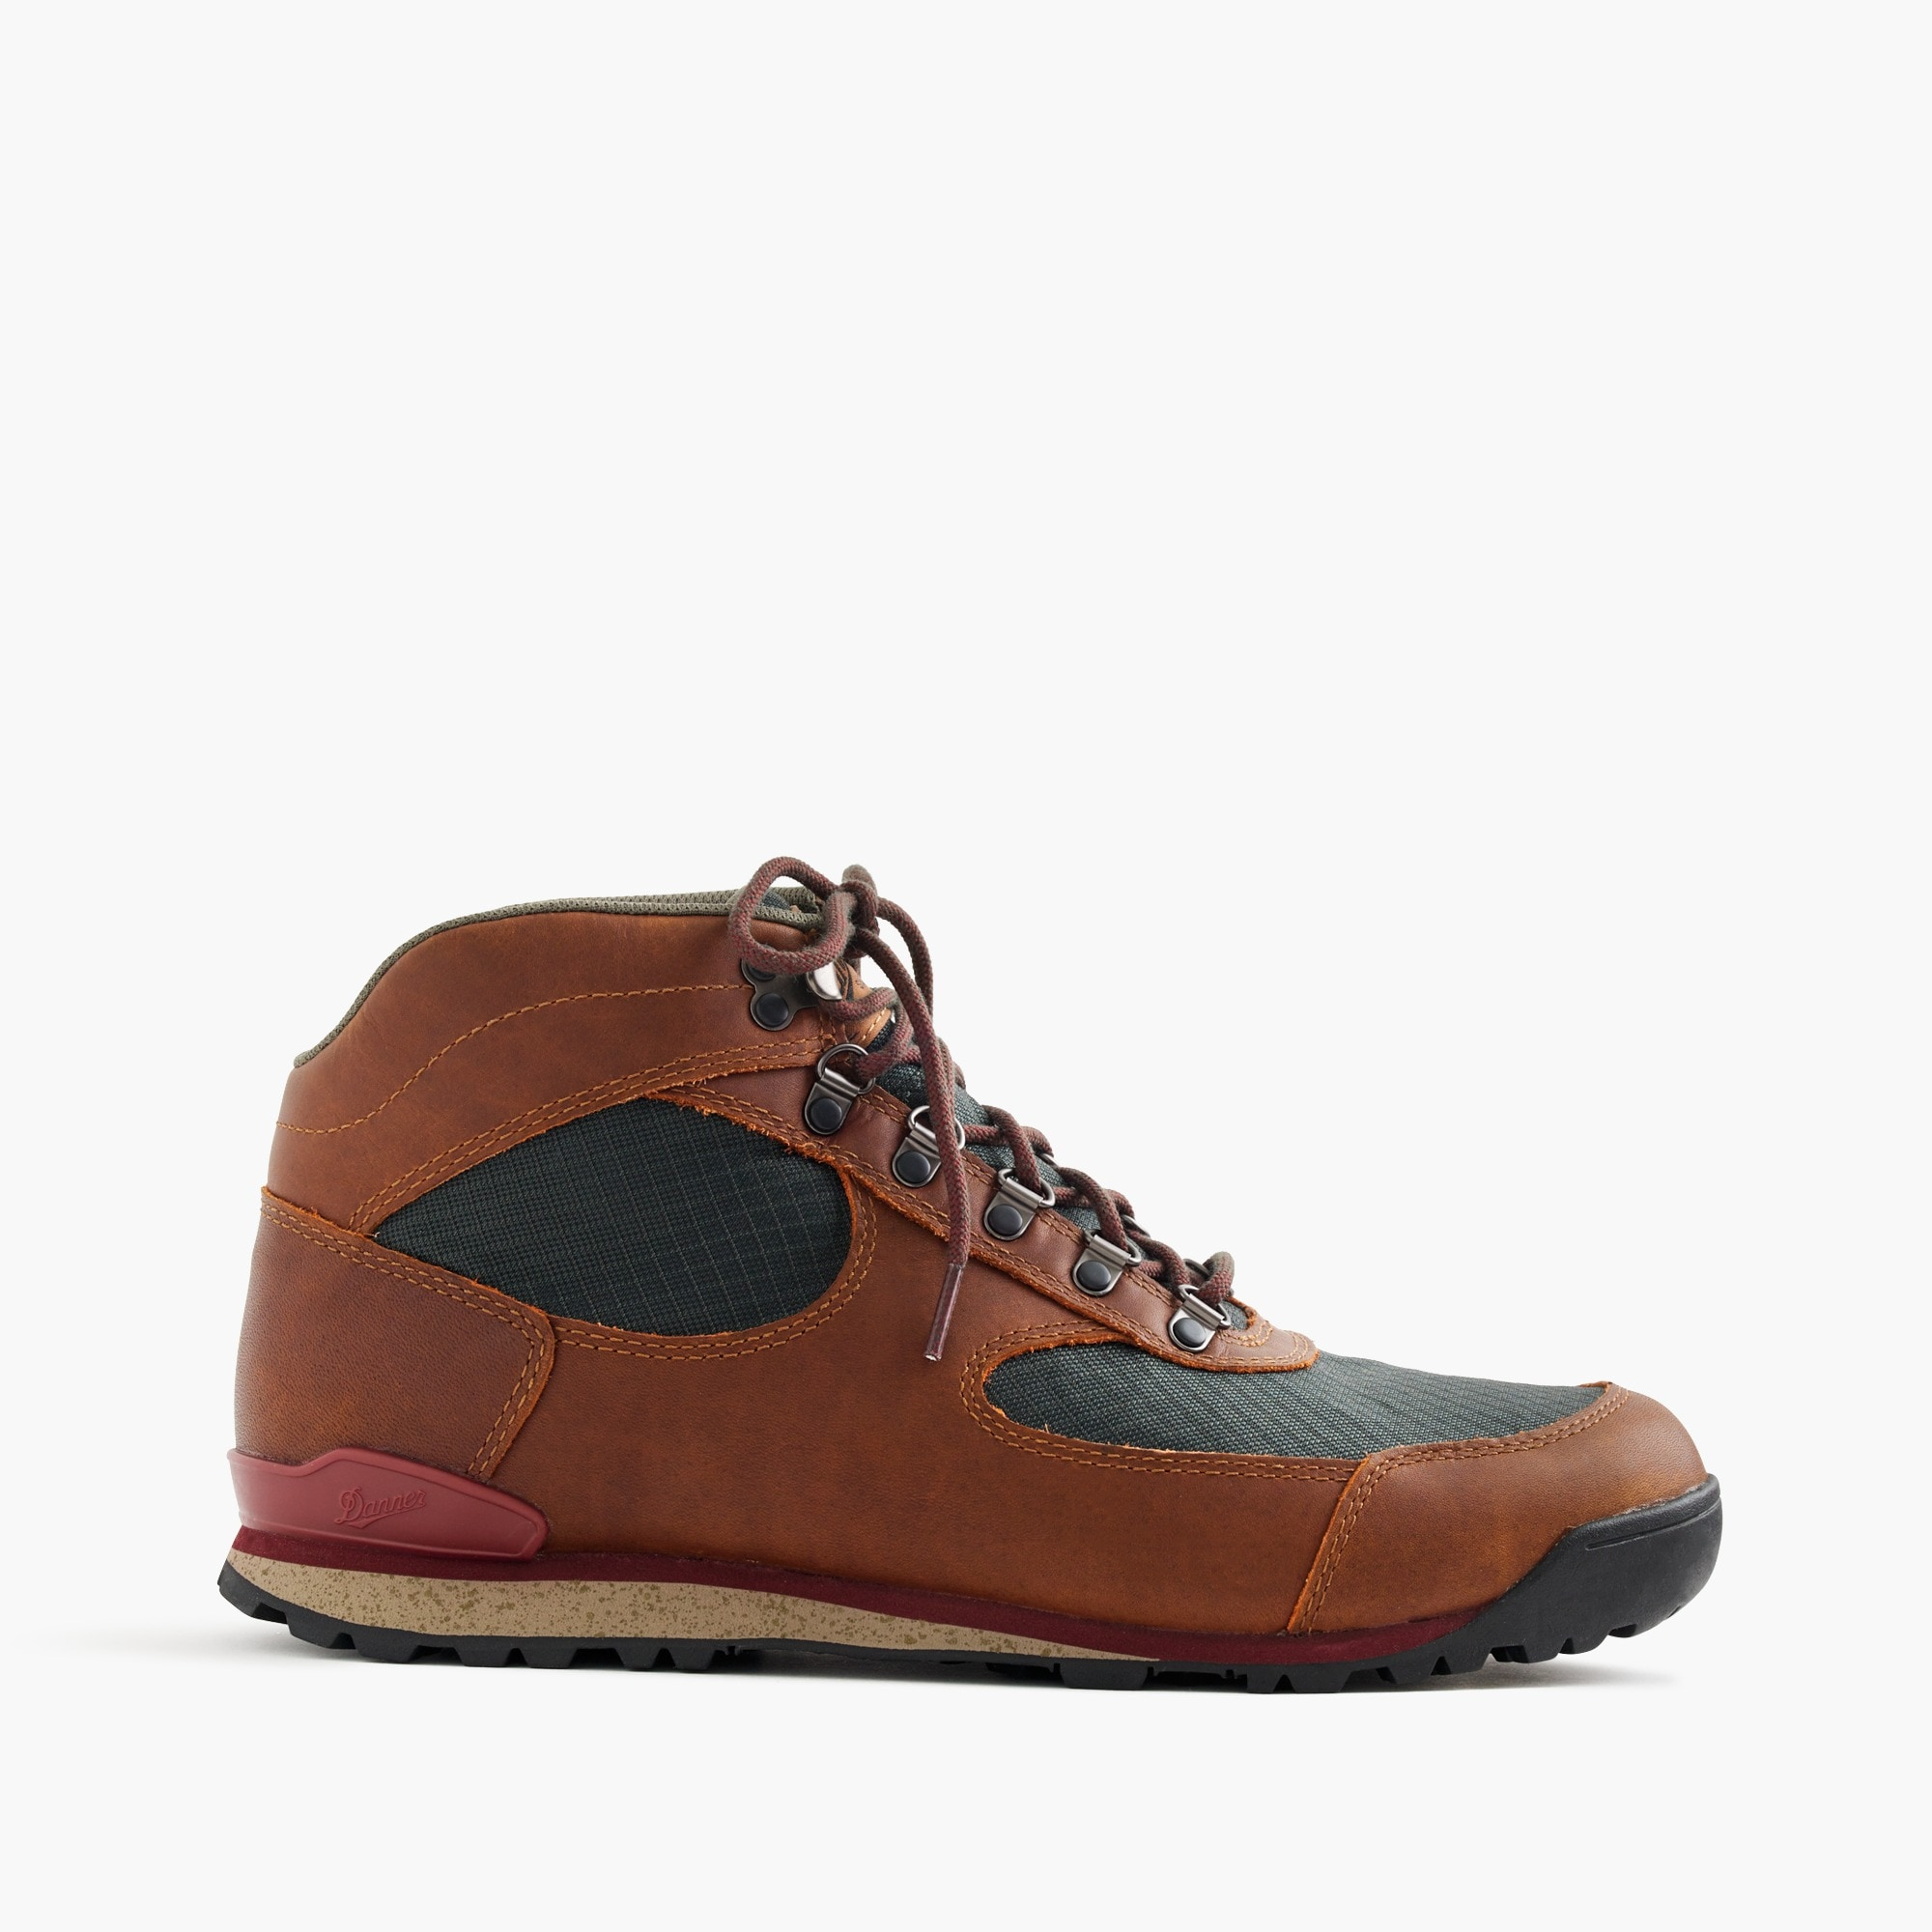 Danner® Jag boots men j.crew in good company c